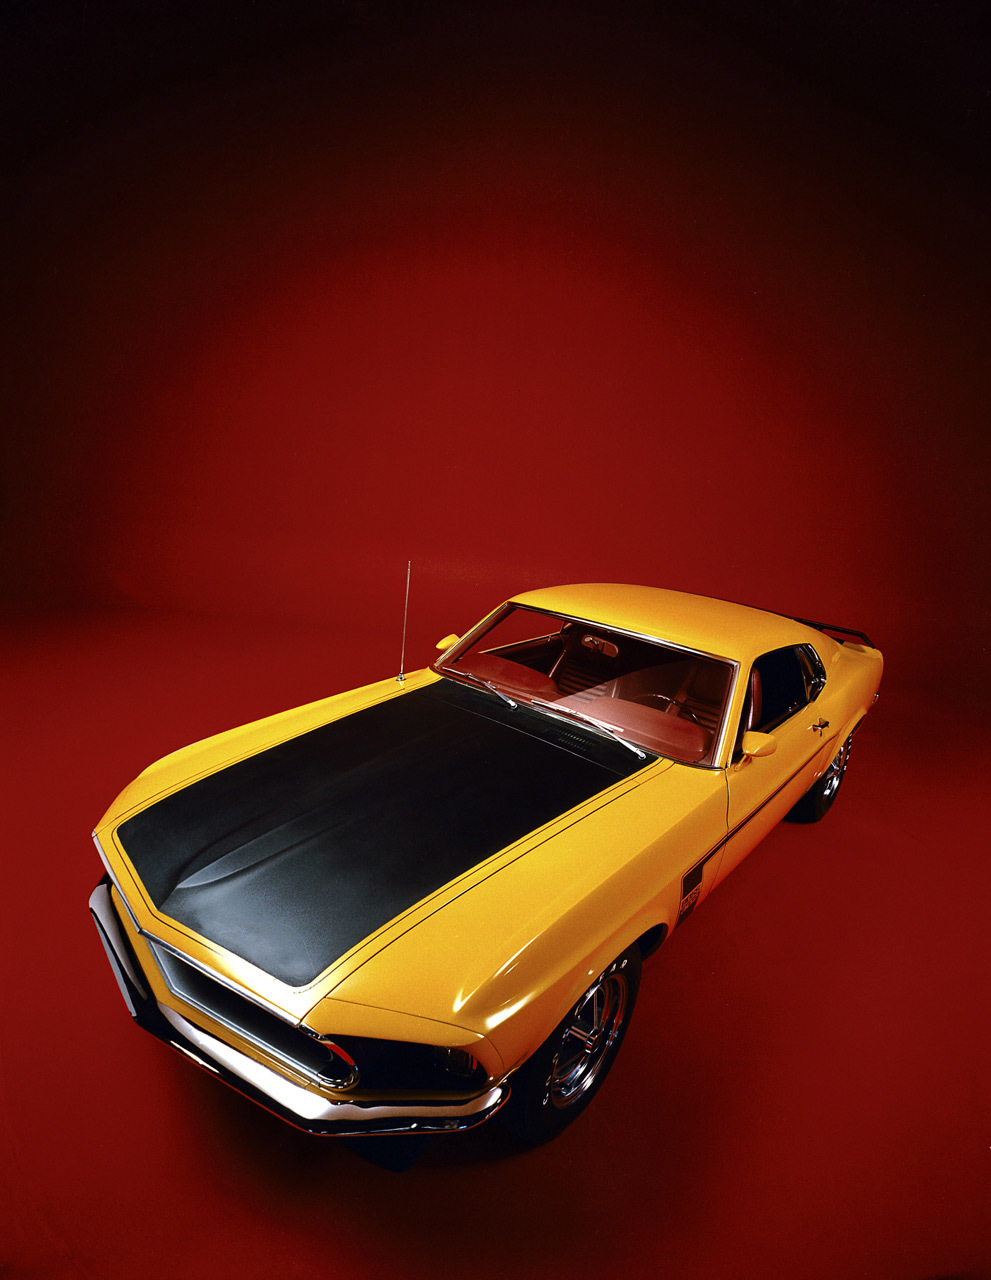 Ford Mustang 1969 >> 1969 Ford Mustang Boss 302 (1/5)